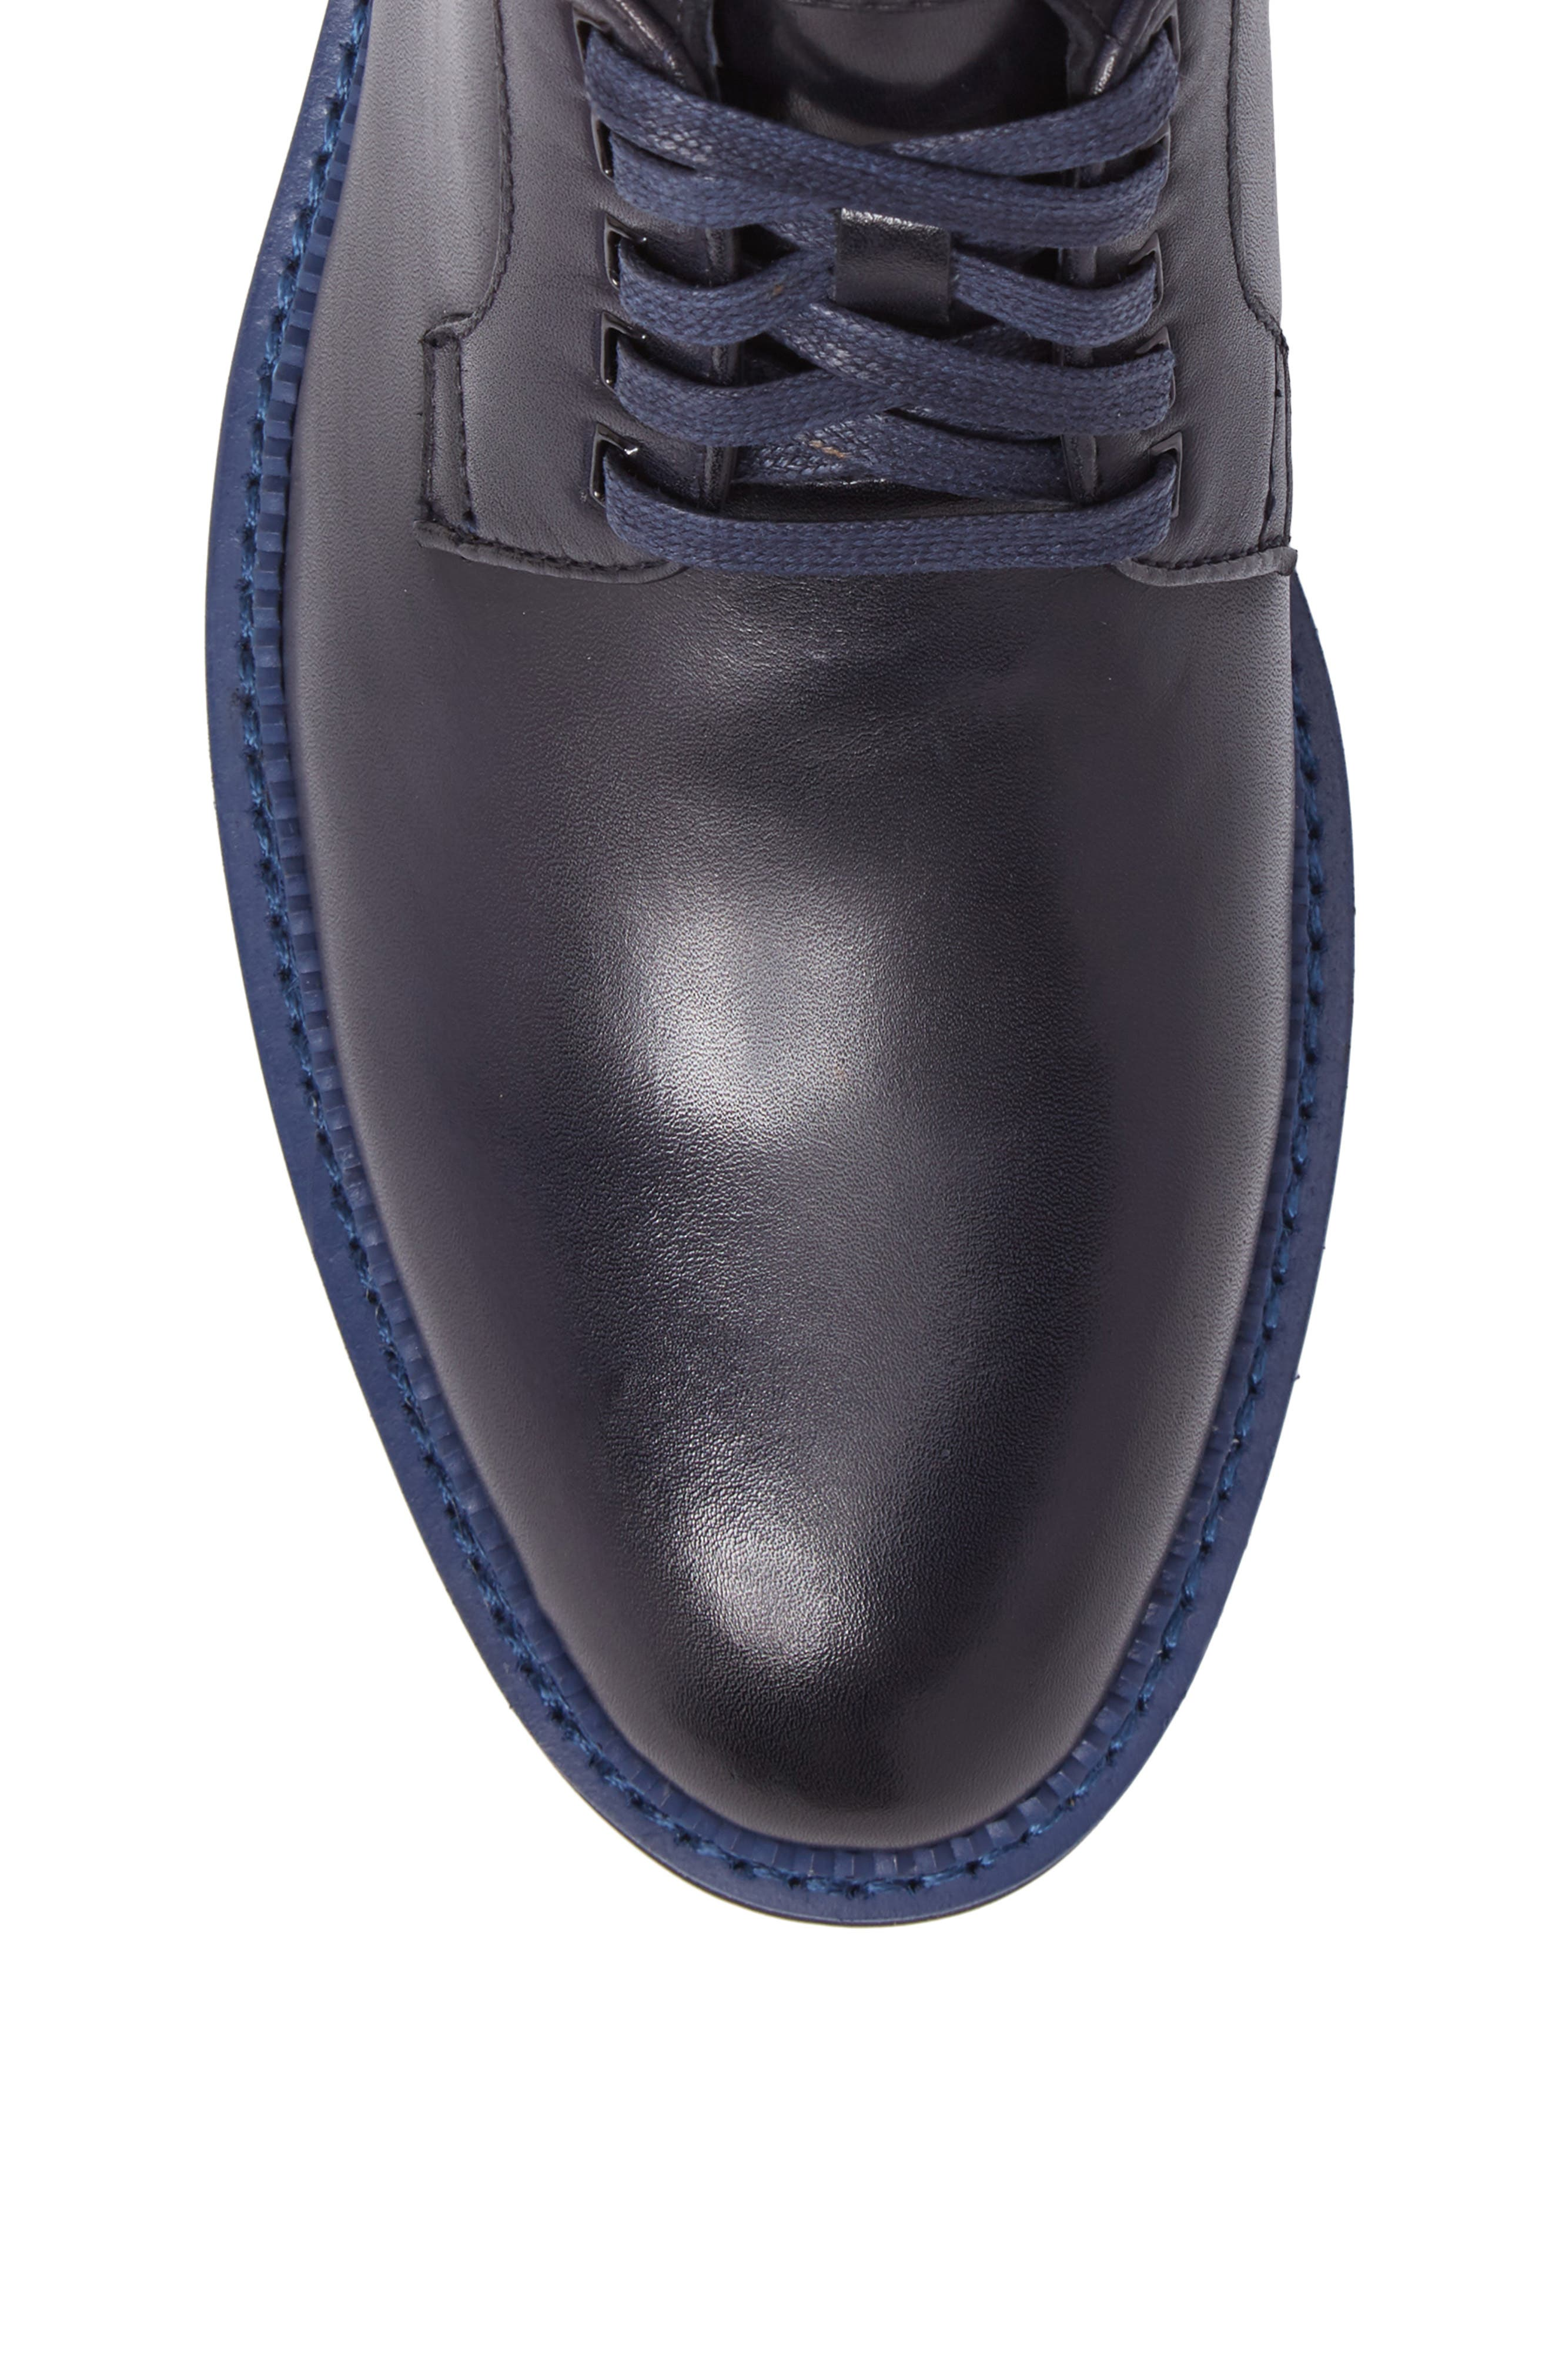 Ginko Plain Toe Boot,                             Alternate thumbnail 5, color,                             Navy Leather